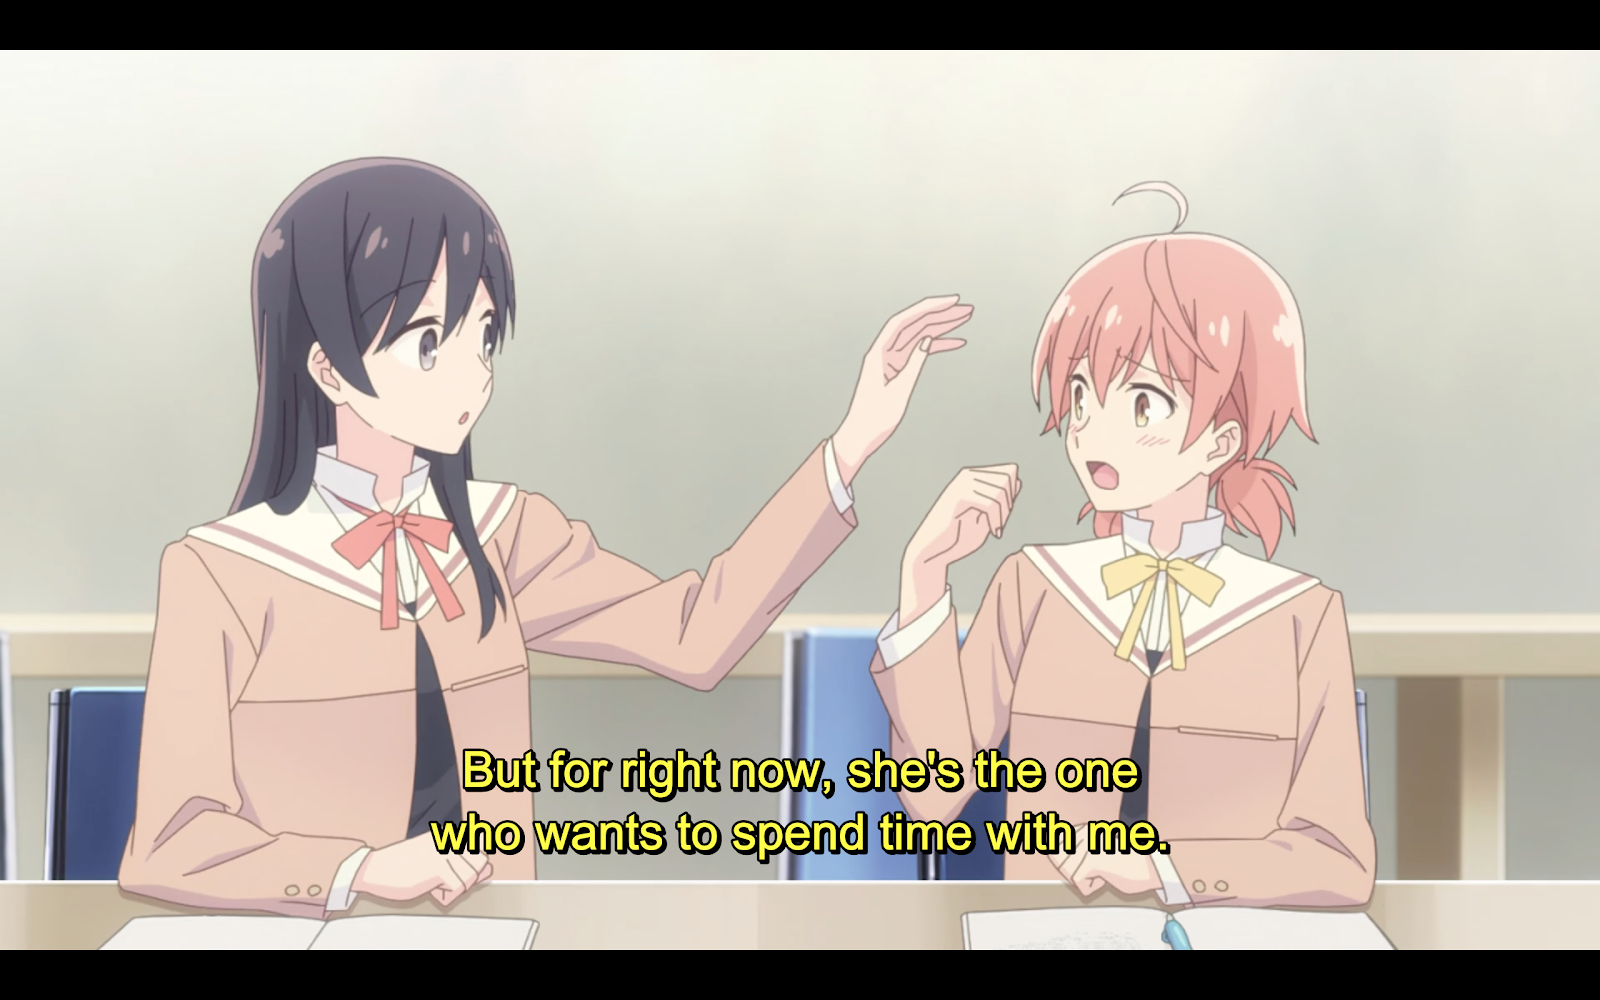 Aex Anime crunchyroll - bloom into you and exploring asexuality